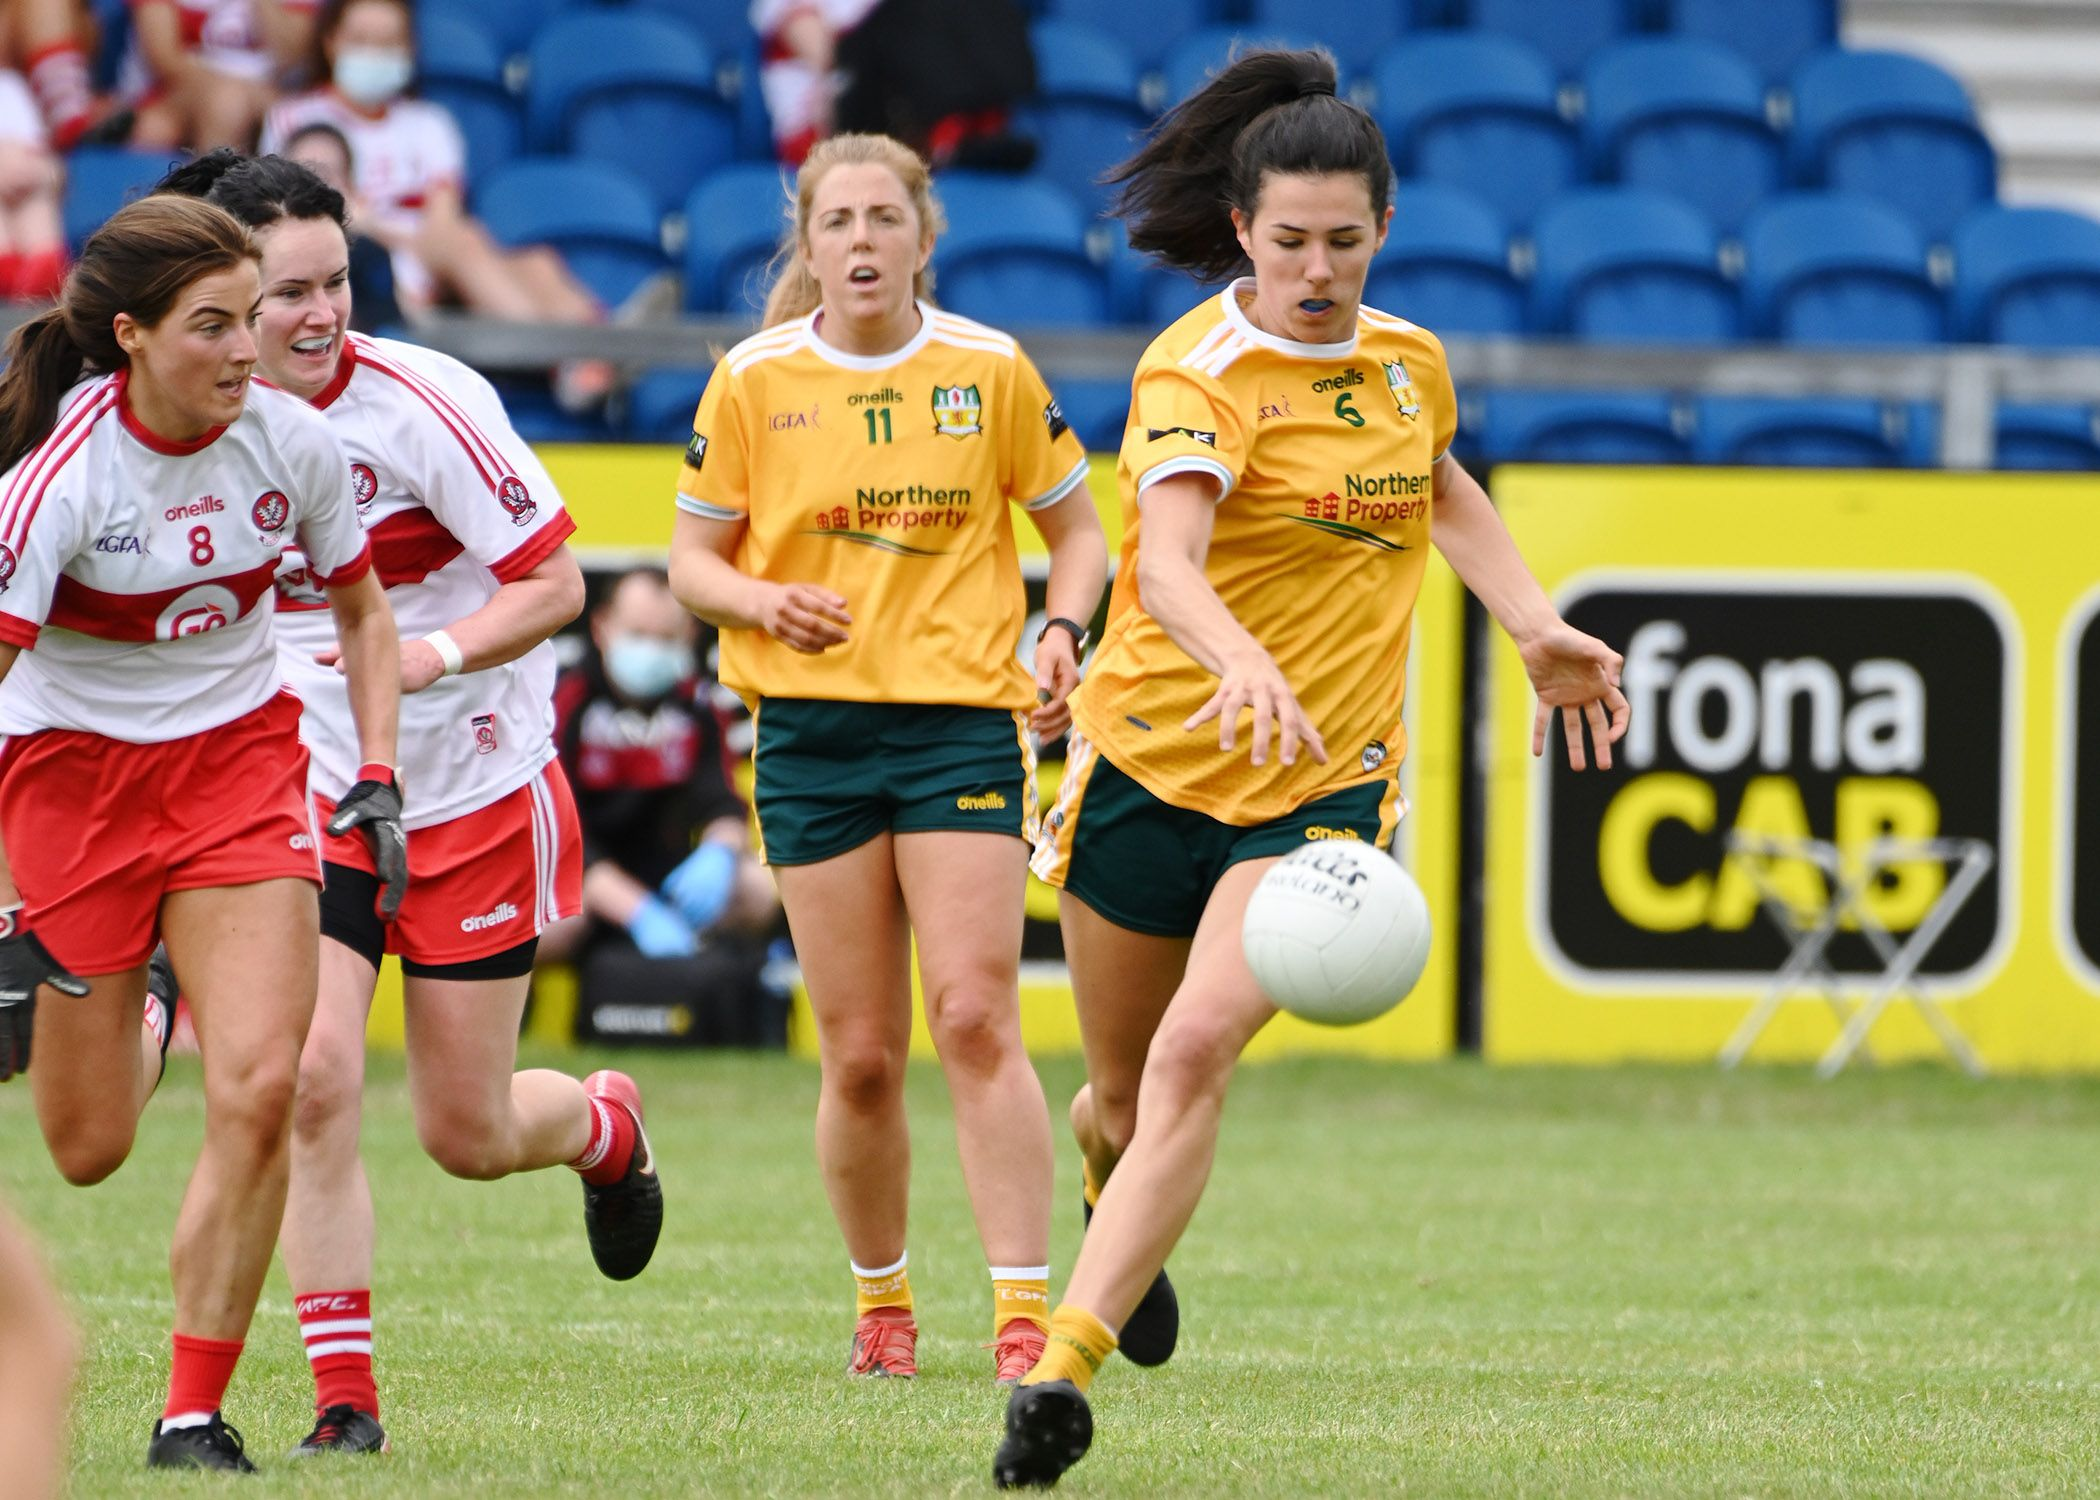 Antrim's Maeve Blaney tries to break free of the Derry challengers, led by midfielder Aine McAllister during Sunday's game at Corrigan Park